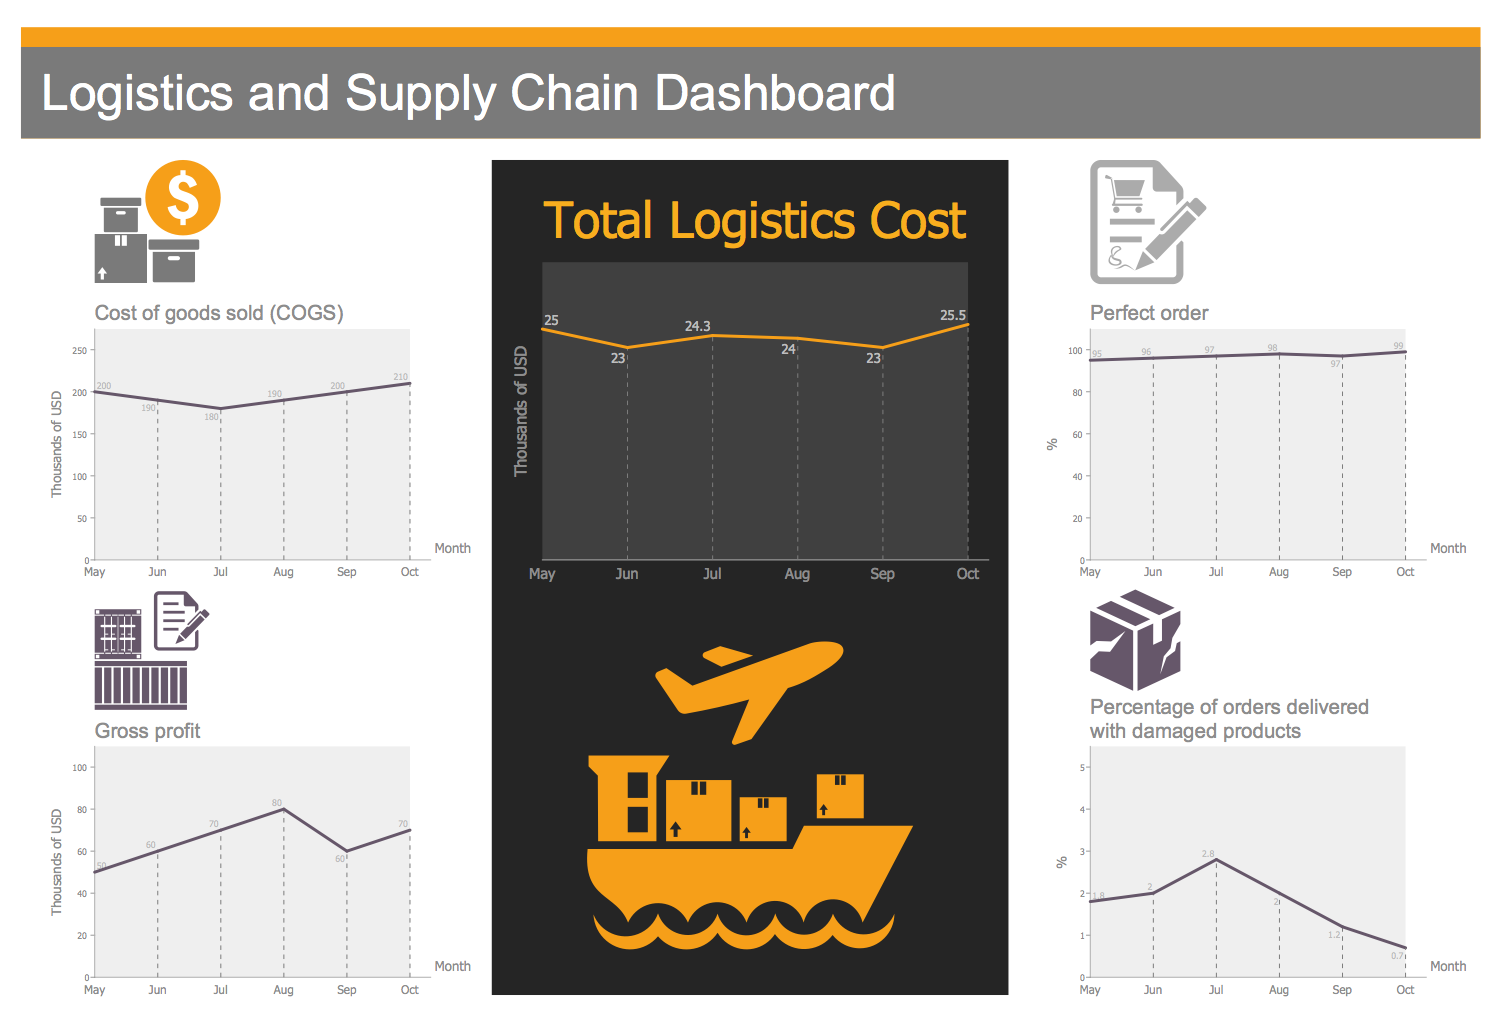 Logistics and Supply Chain Dashboard